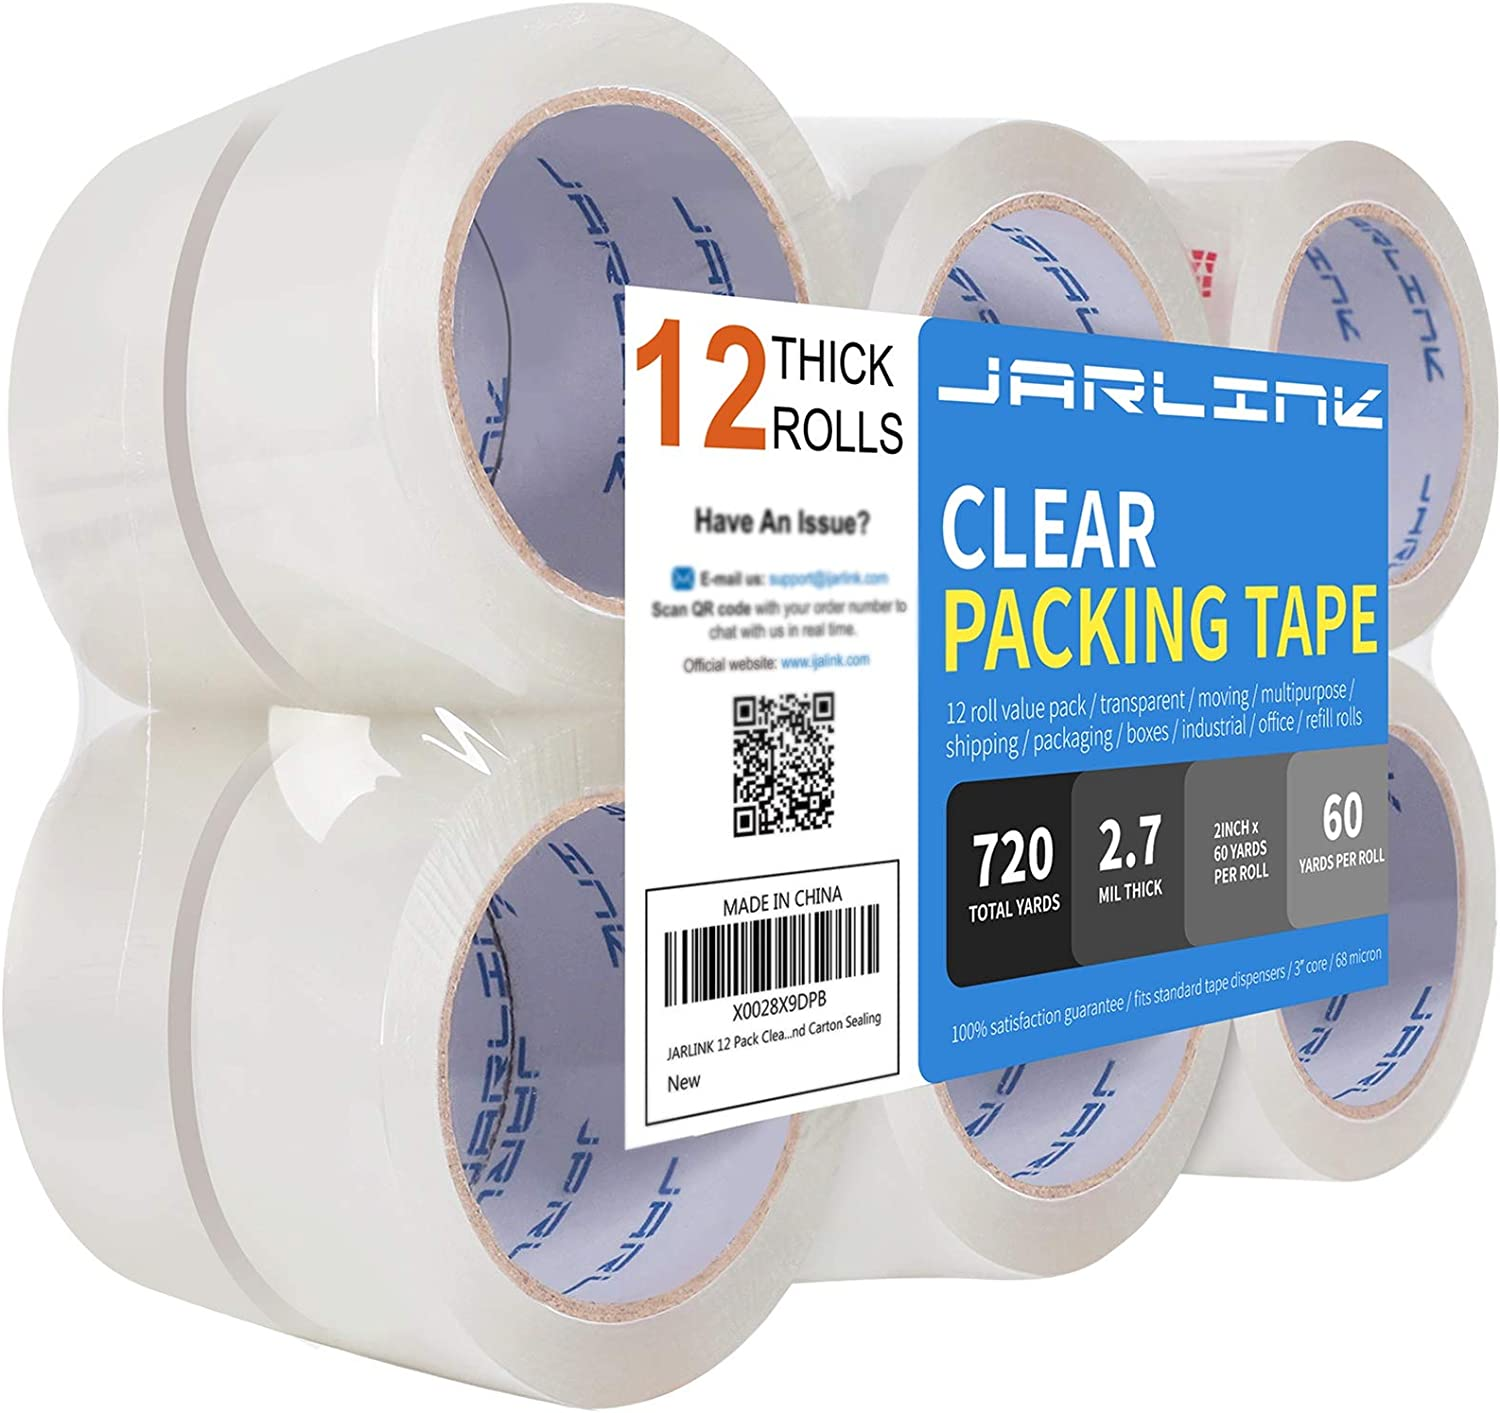 Packaging Moving Grizzly Brand Clear Packing Tape Refill Rolls for Shipping